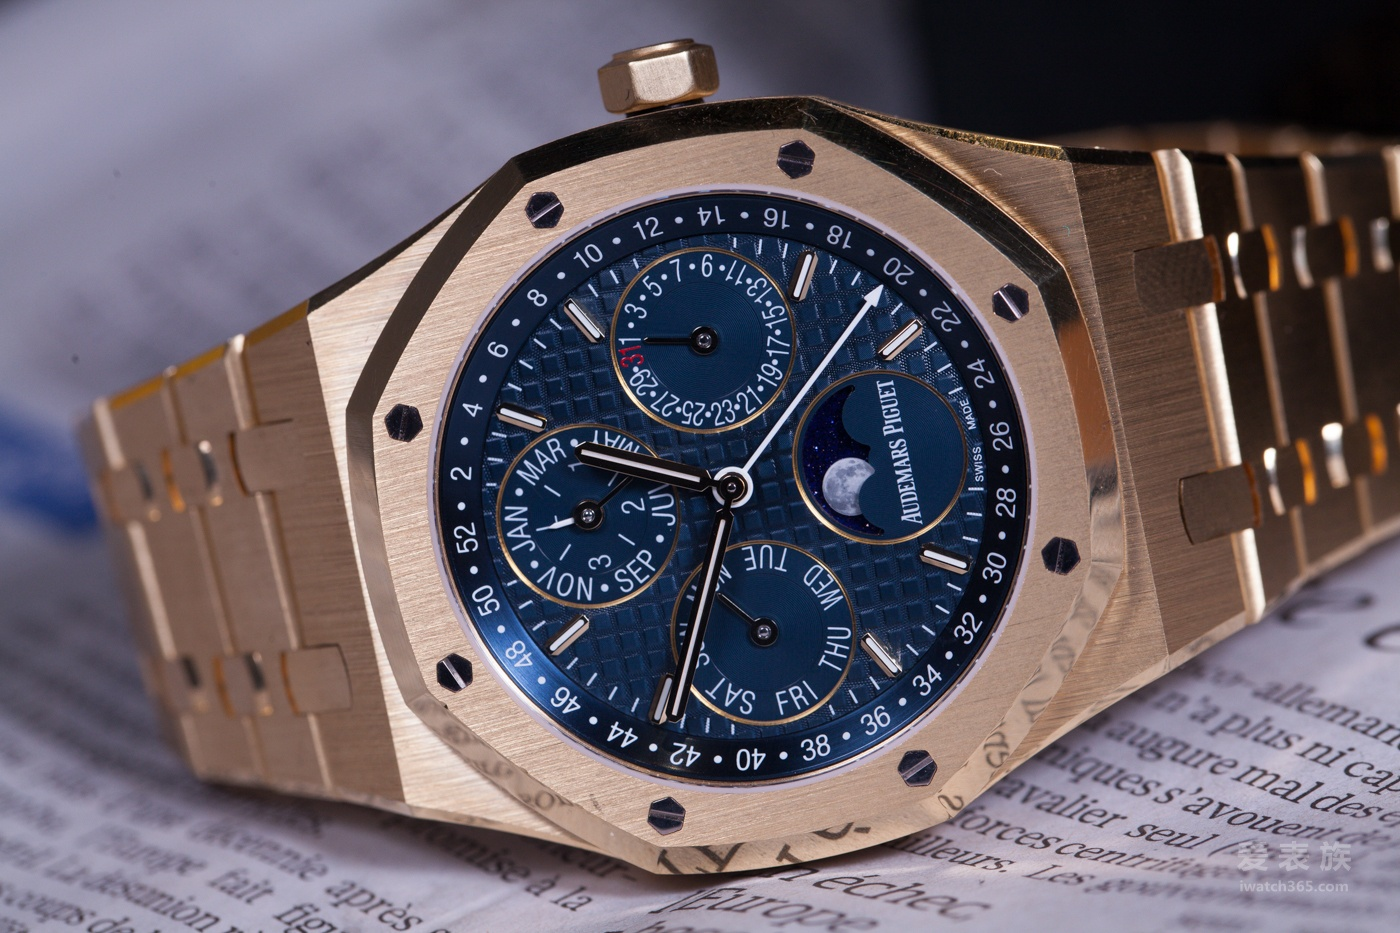 2016 Sihh Watch Fair In Geneva Audemars Piguet Royal Oak Concept Replica New Watches Courier Panerai Replica Watches Fake Panerai Watches On Sale